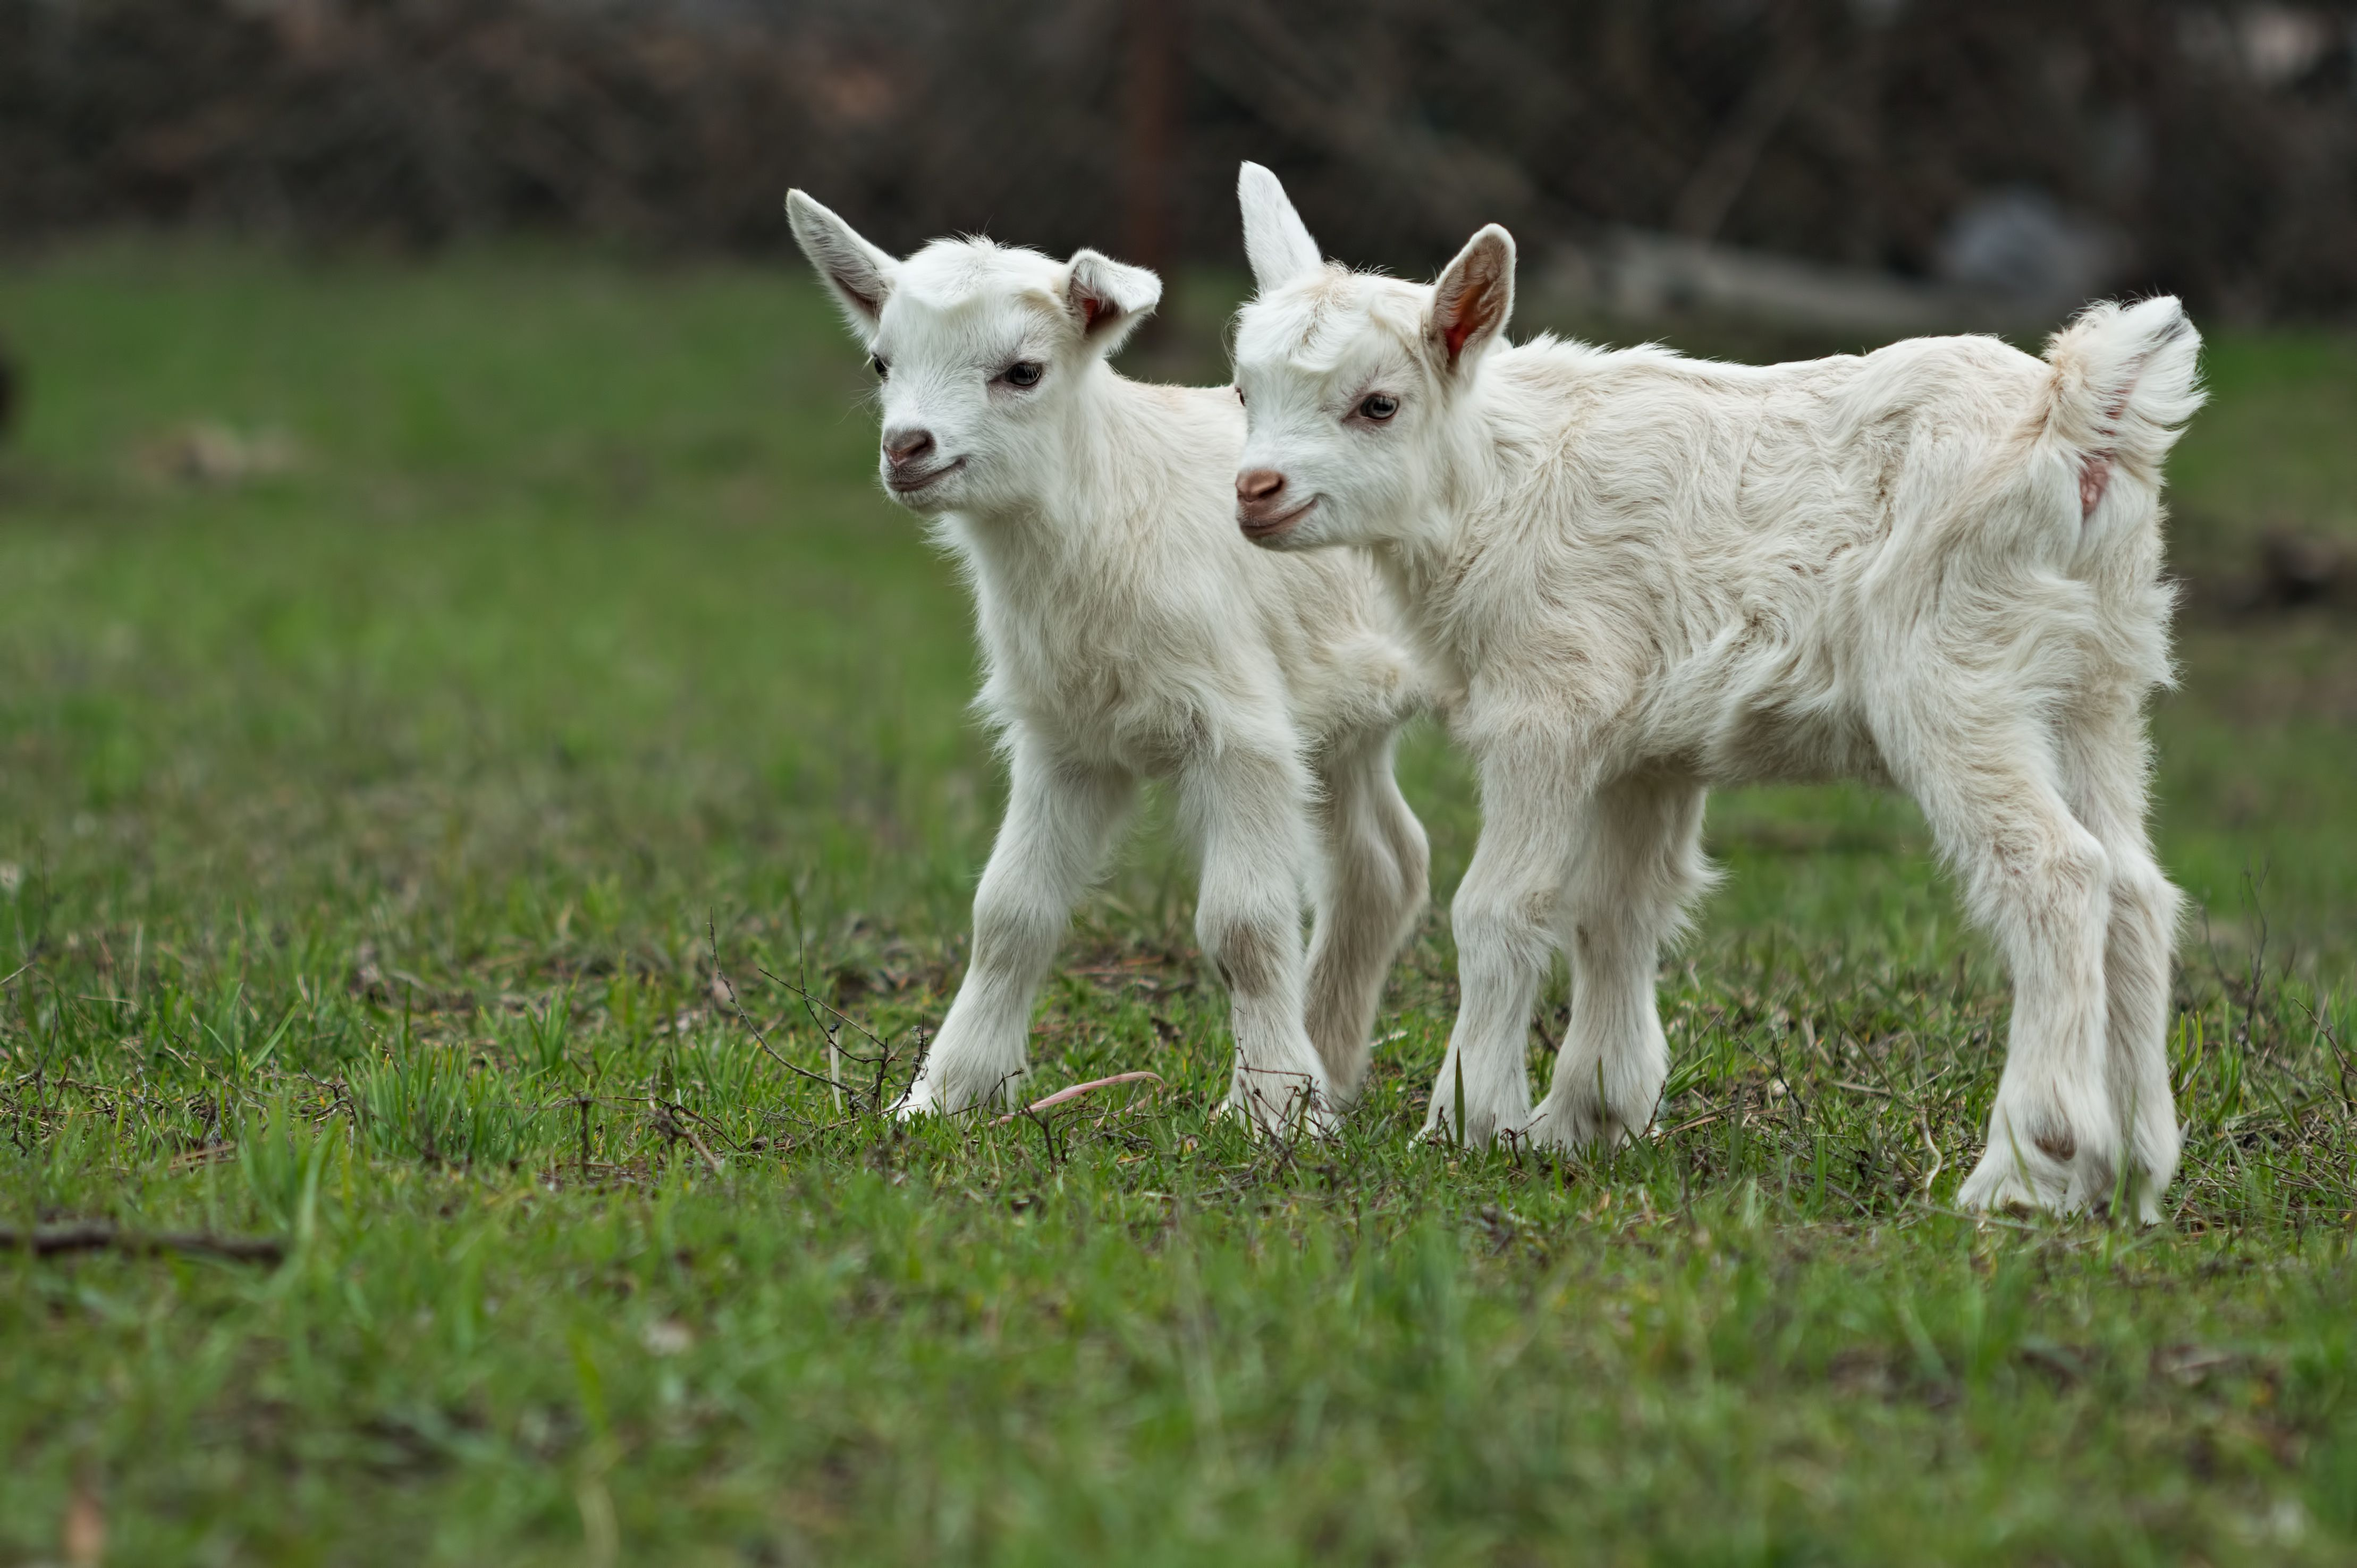 Two Little Goats On A Greed Grass